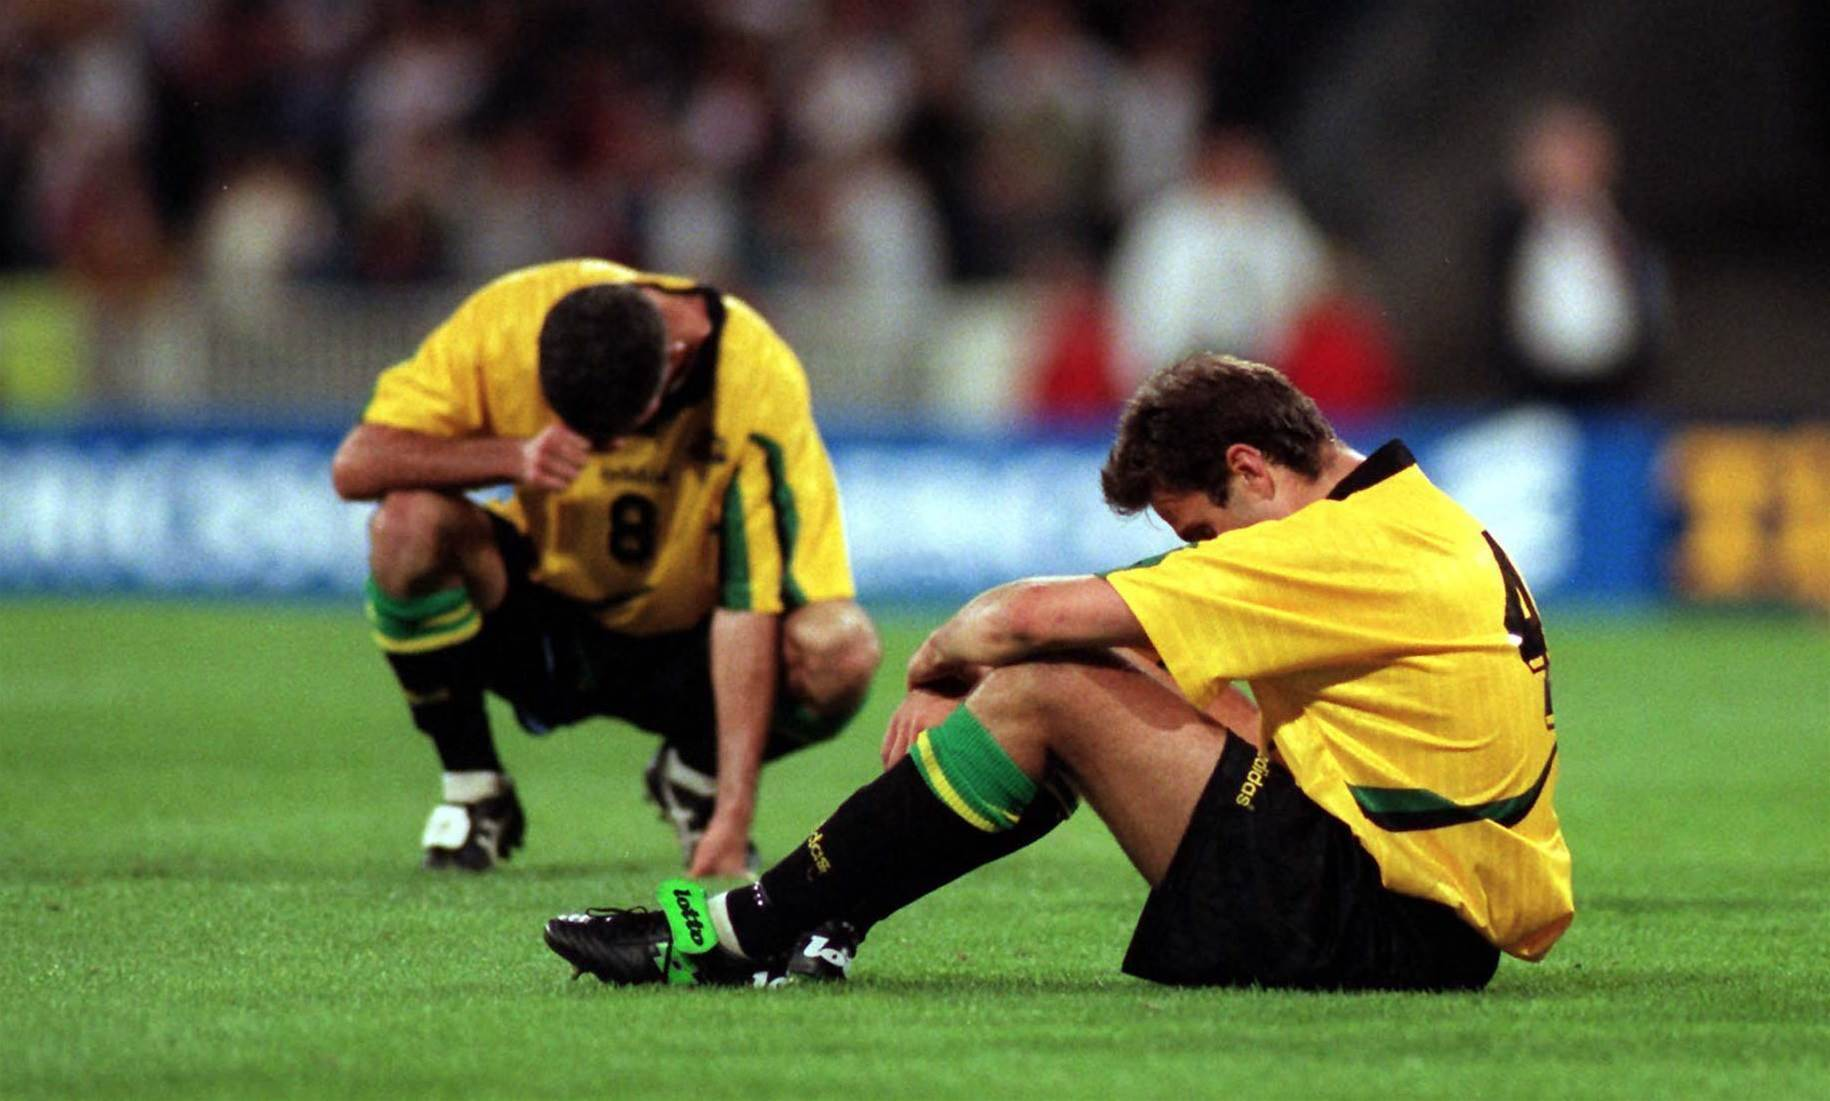 Australia v Iran 20 years on: Where are they now?